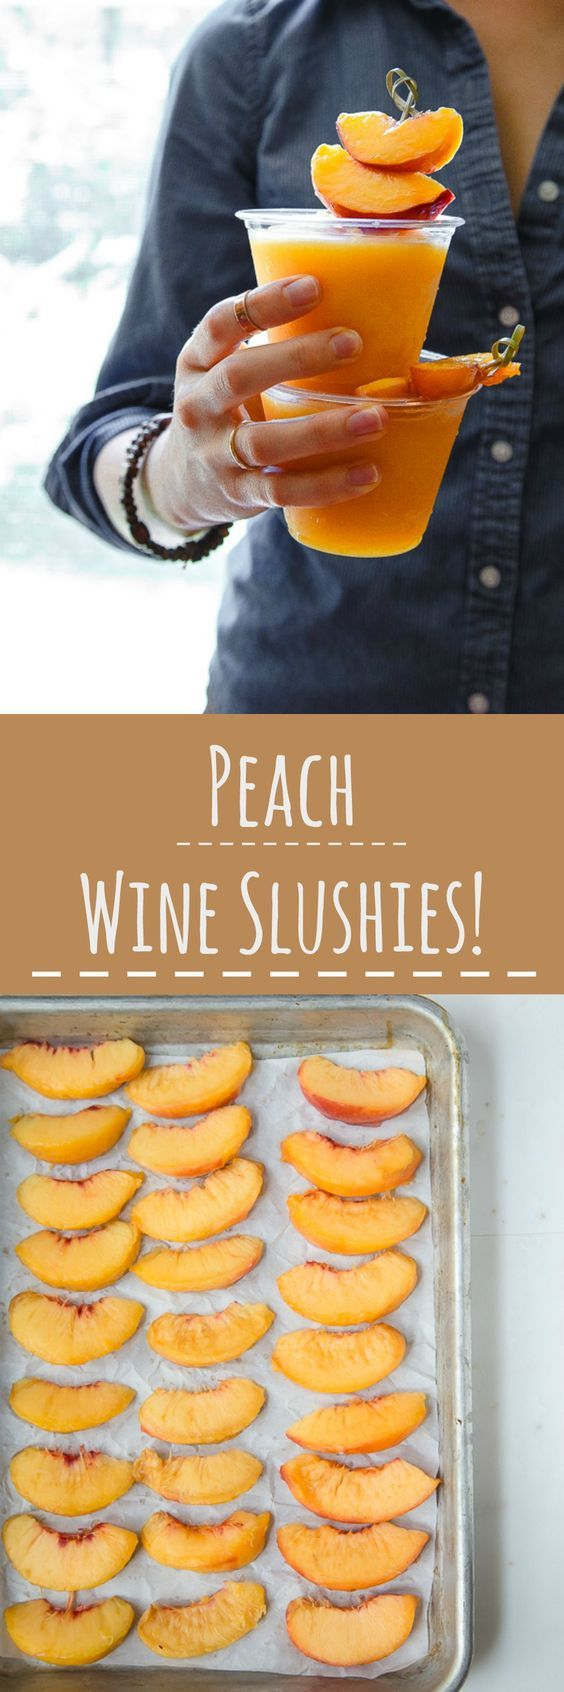 Try this refreshing summer treat: peach wine slushies